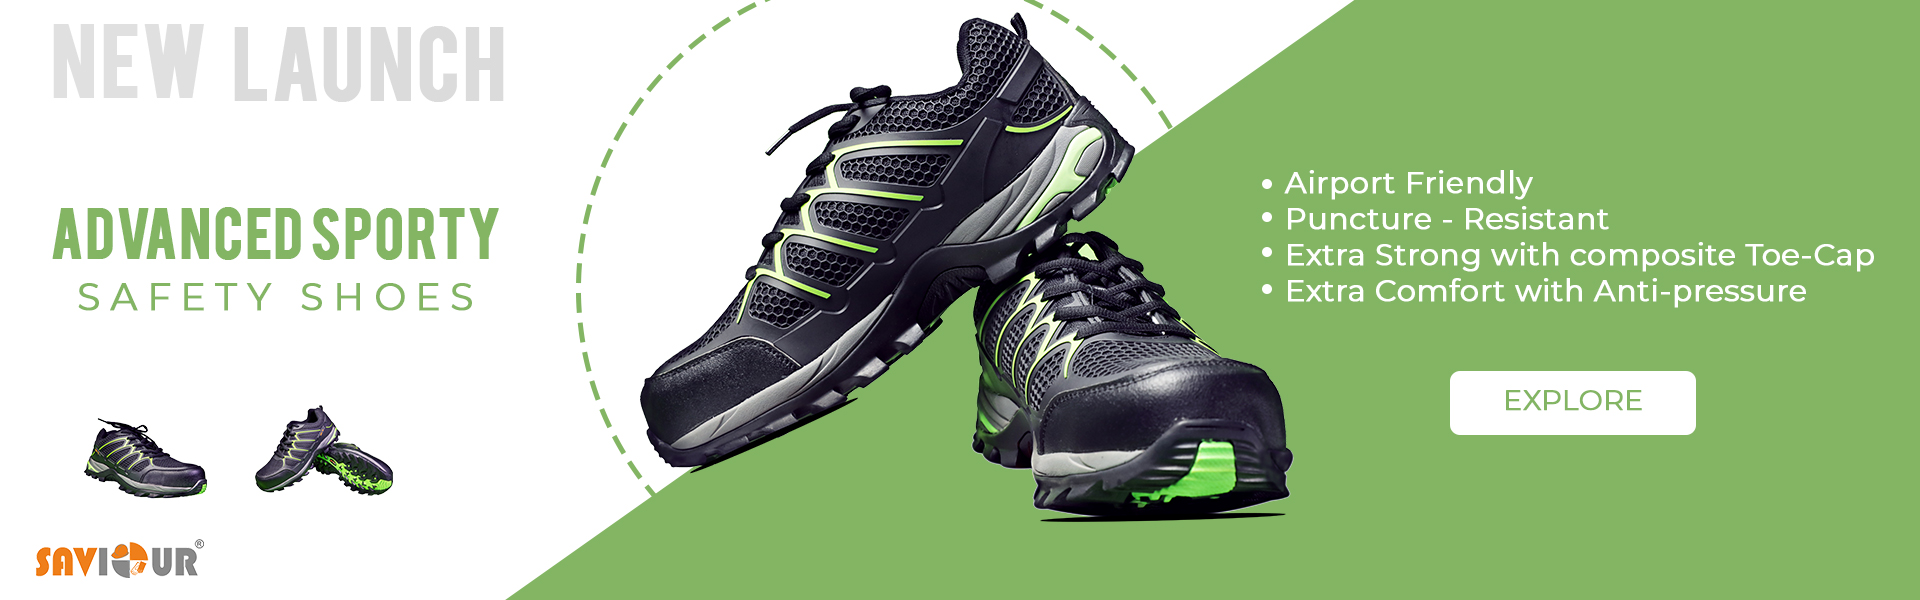 Advanced Sporty Safety Shoes